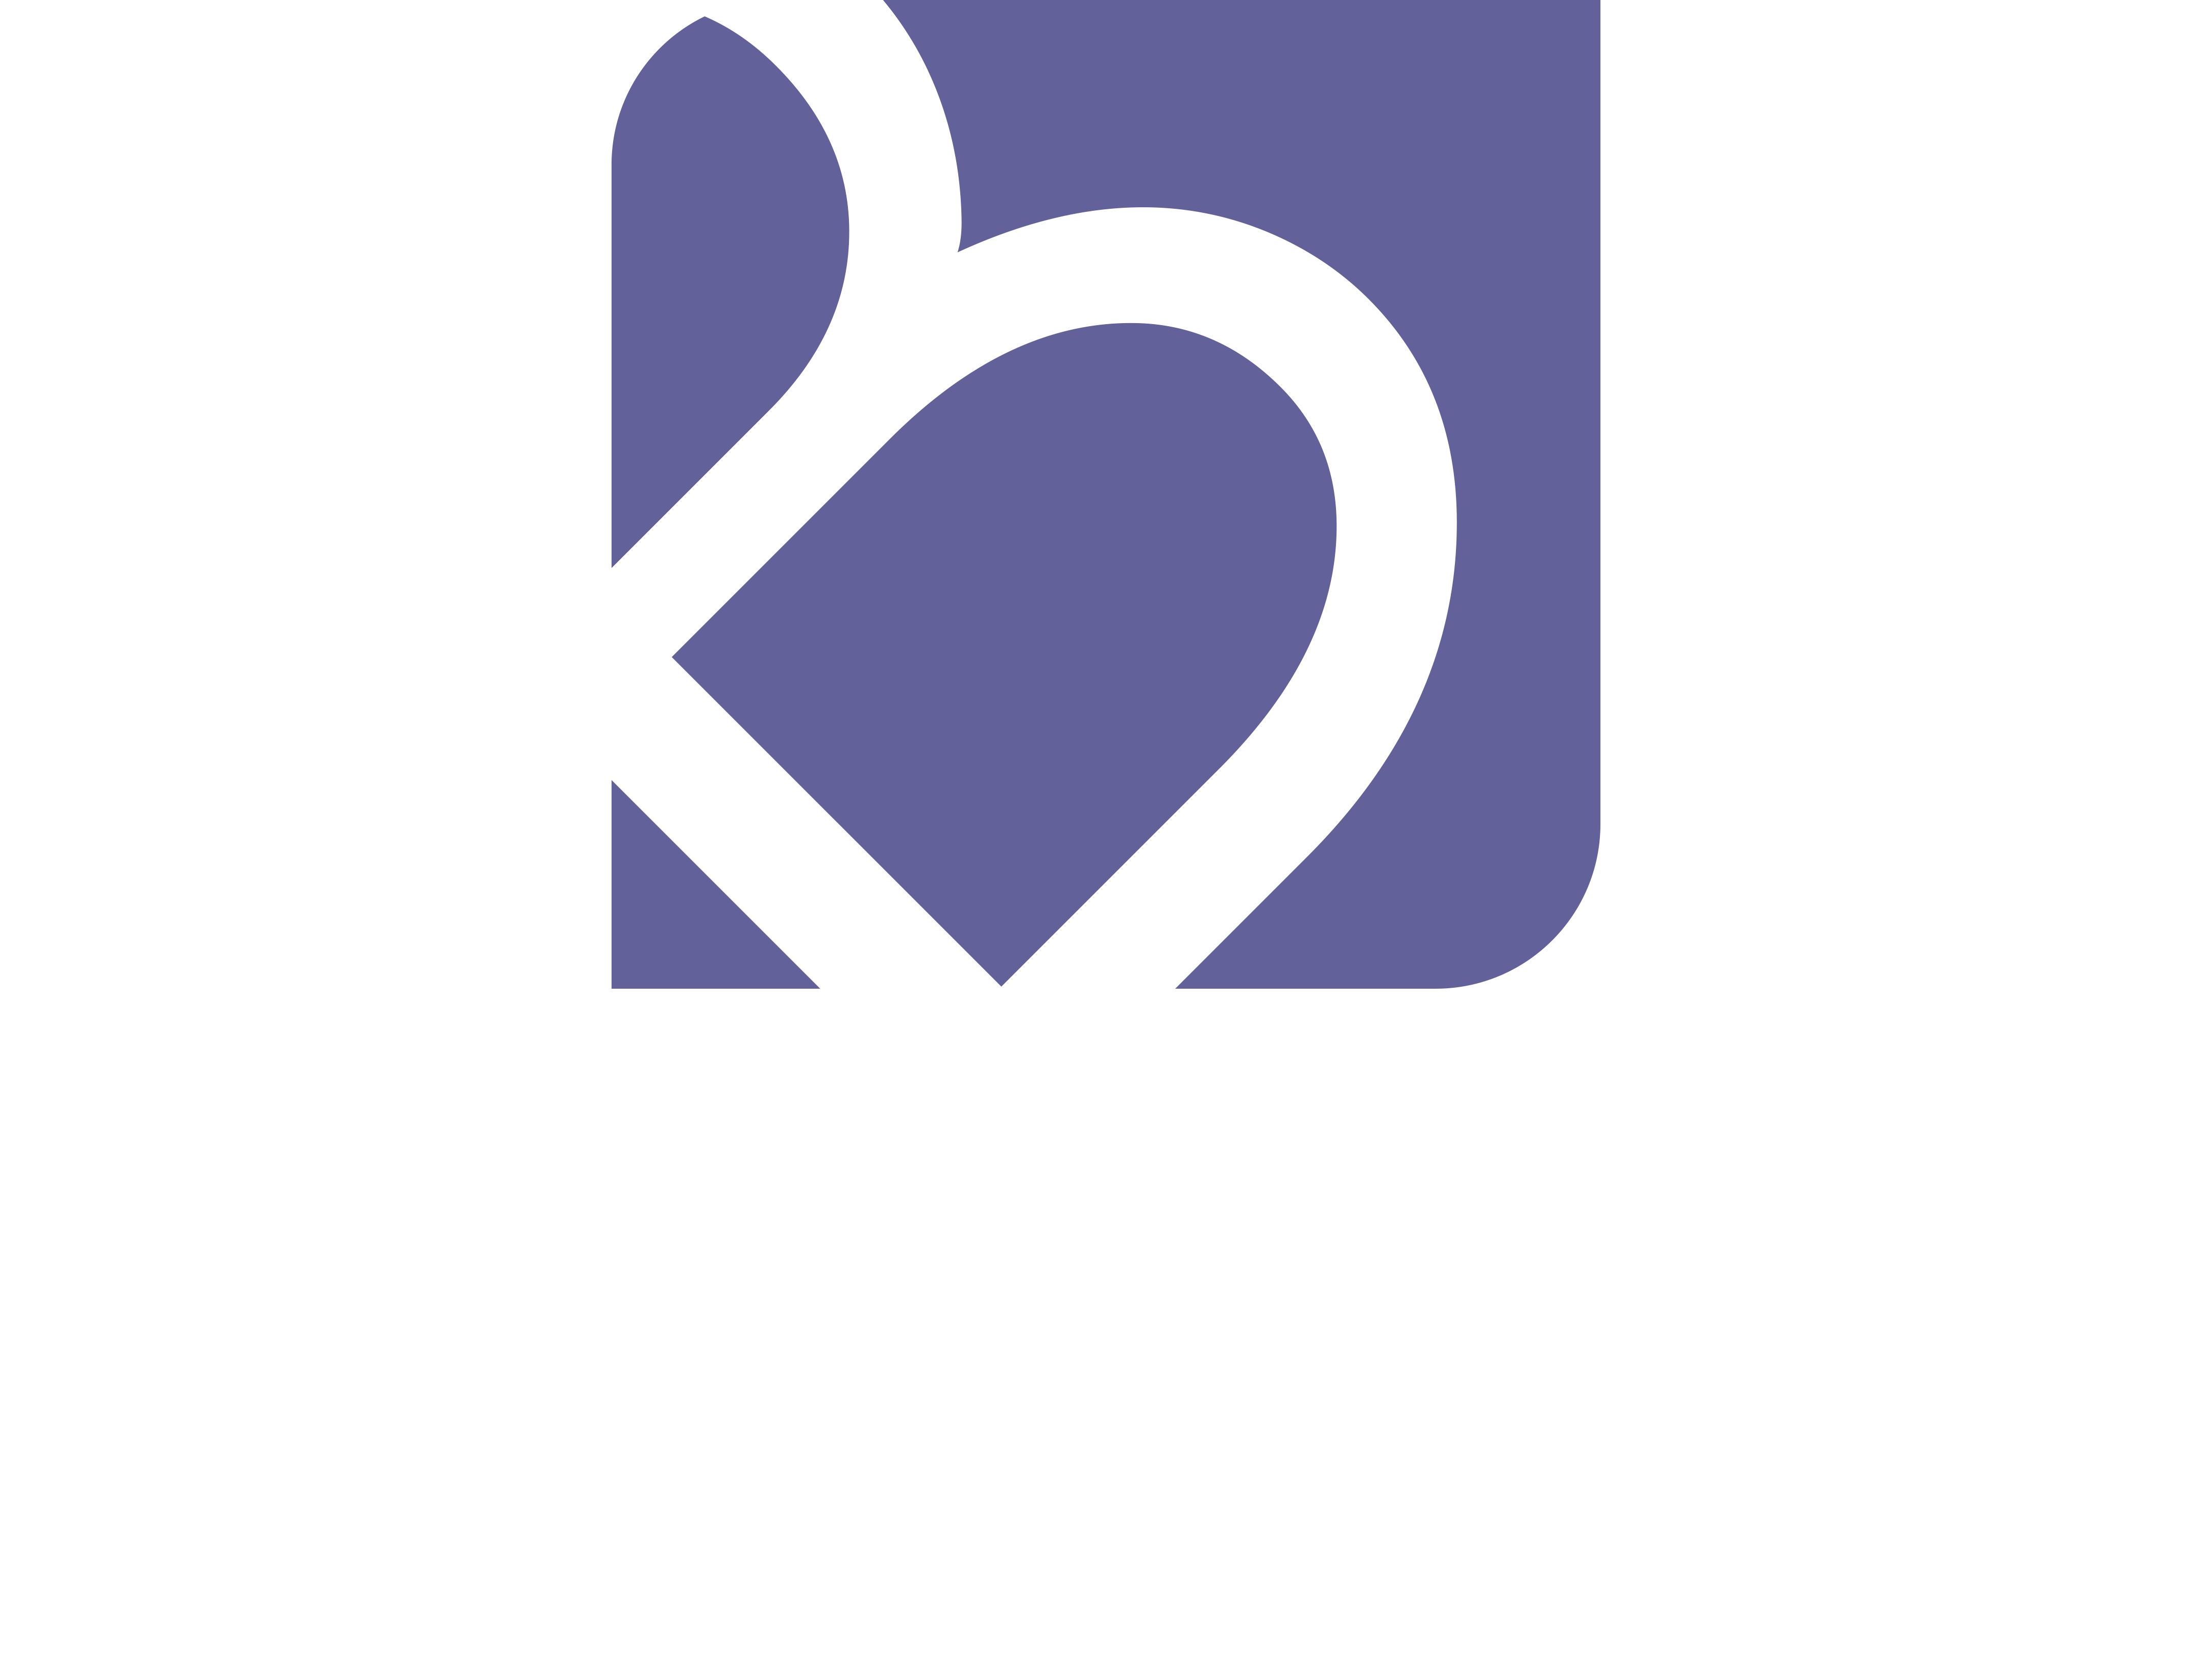 Beach Baker Recruitment